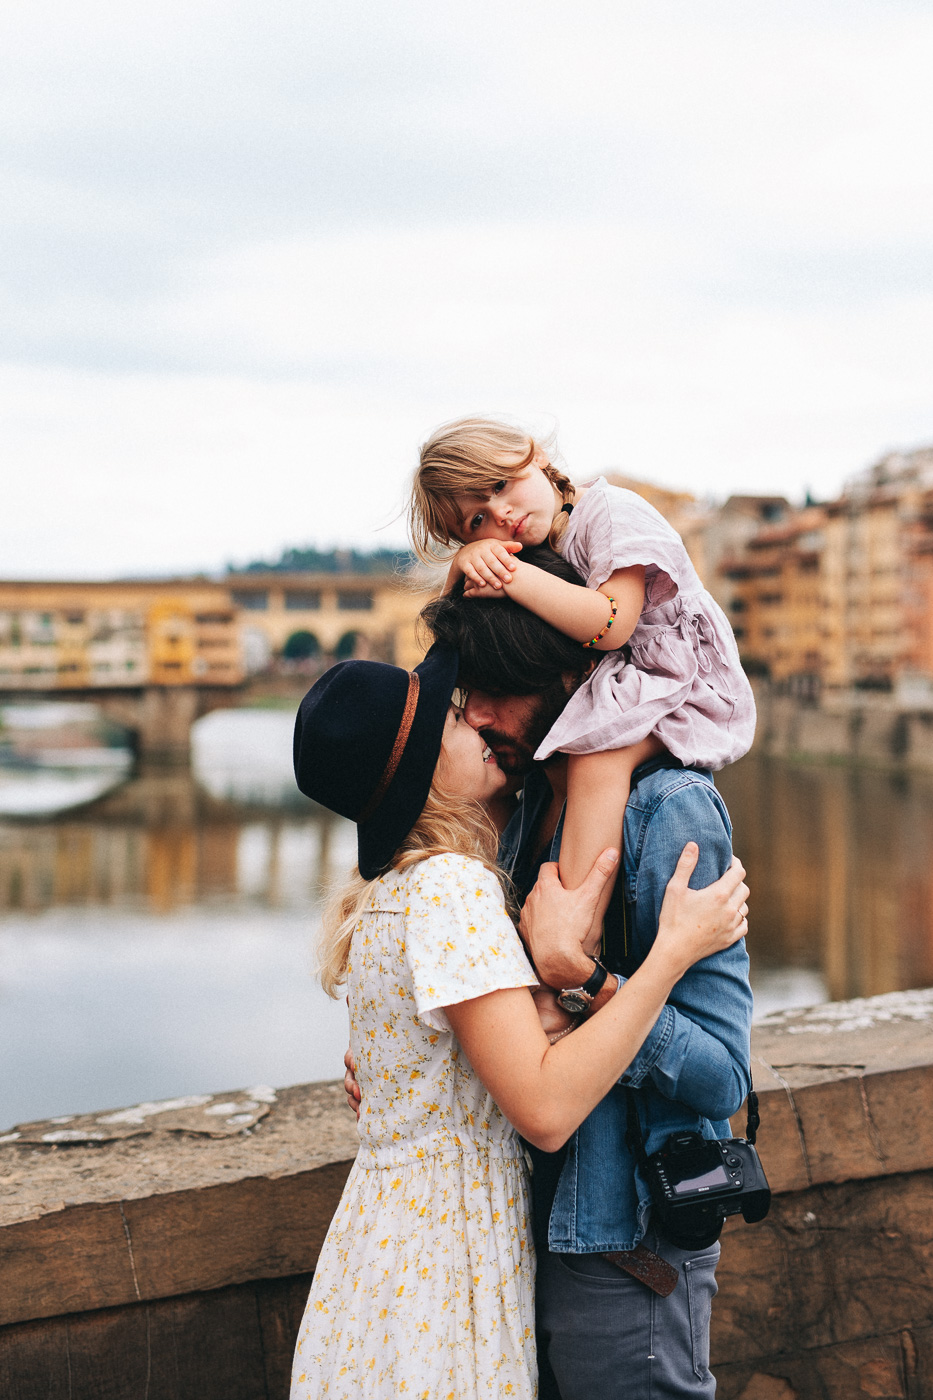 //euphoriawedding.com/wp-content/uploads/2019/11/Family-Photoshoot_Florence_WEB-202.jpg